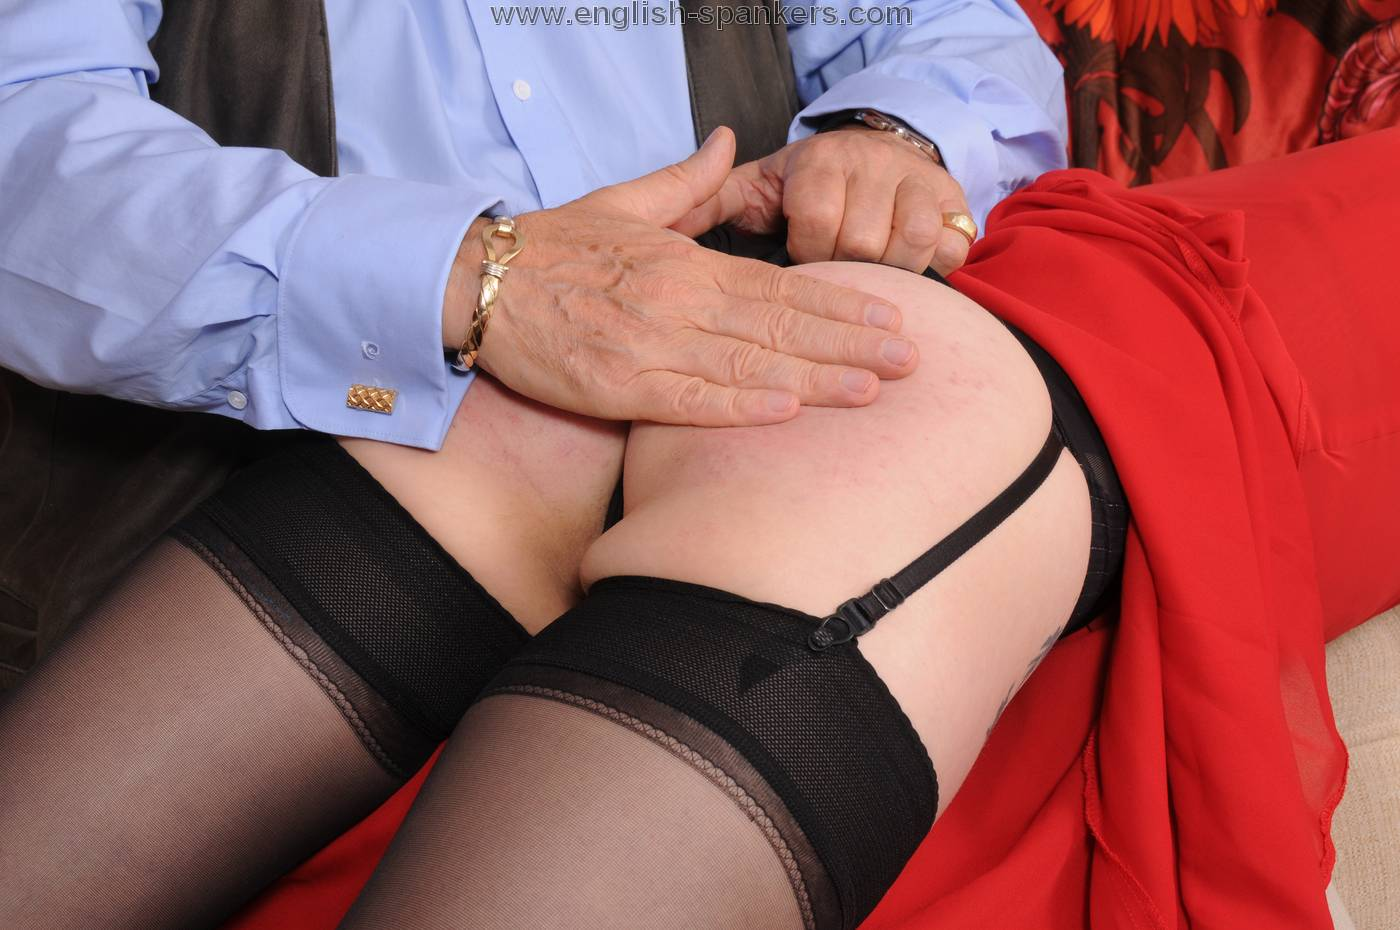 English spanking clips love home